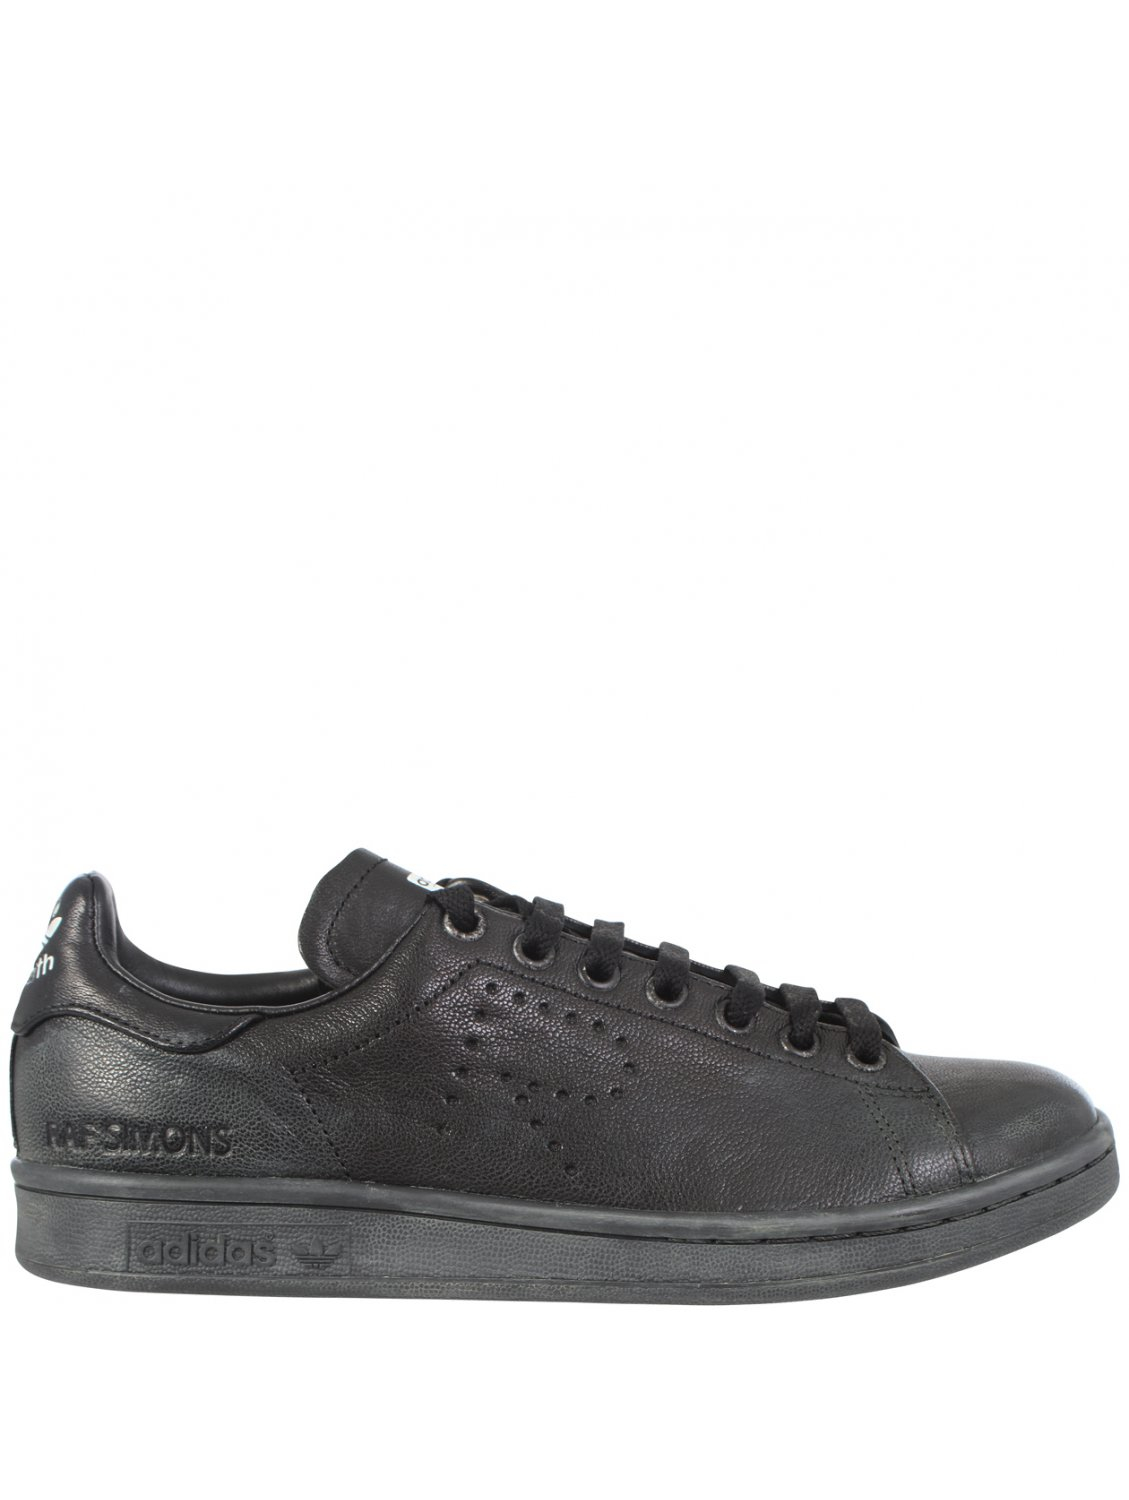 raf simons stan smith aged leather low top sneaker in. Black Bedroom Furniture Sets. Home Design Ideas